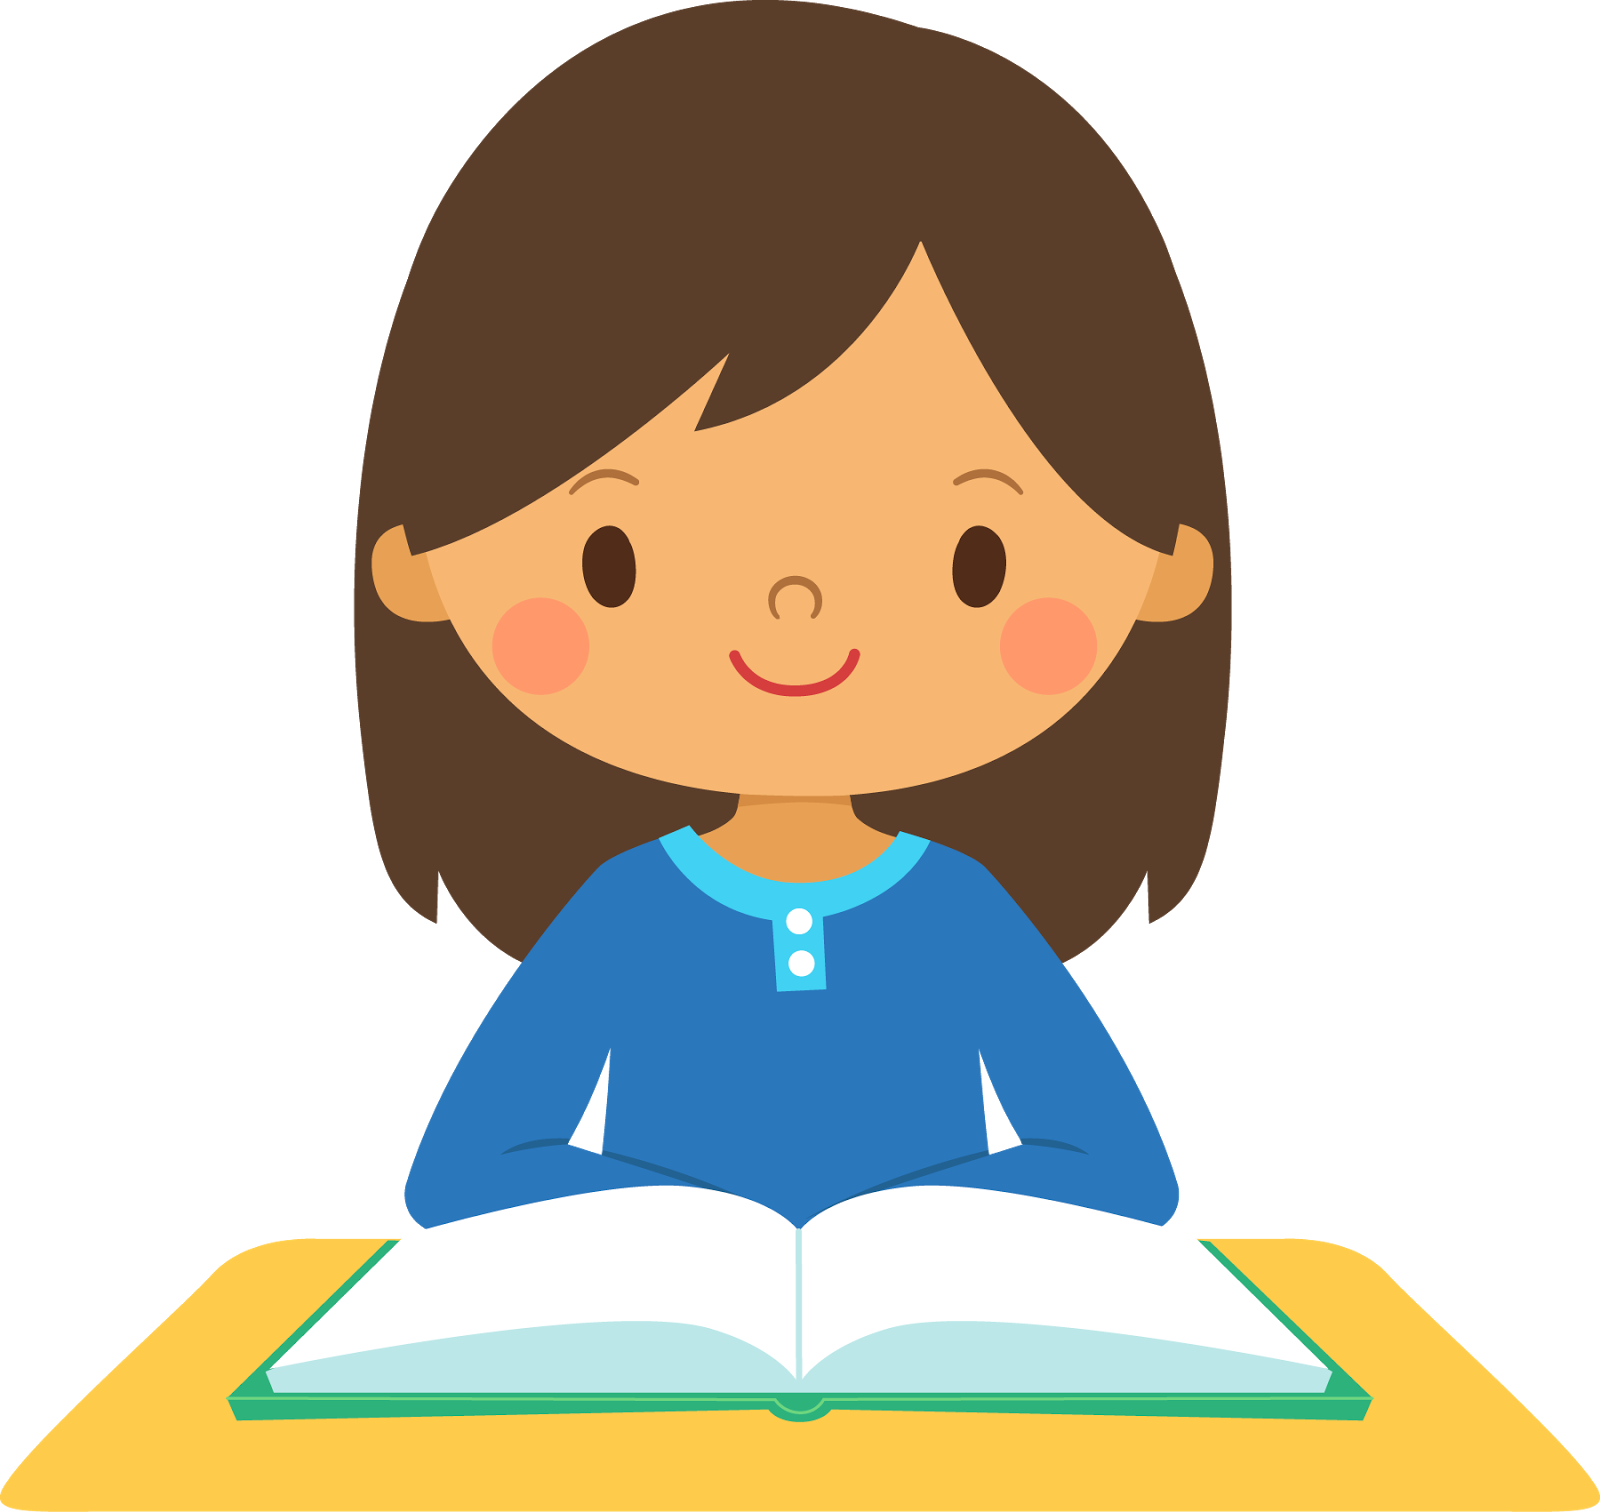 Girl book clipart picture royalty free smiling girl at a desk with a book | Books & Libraries | Pinterest ... picture royalty free